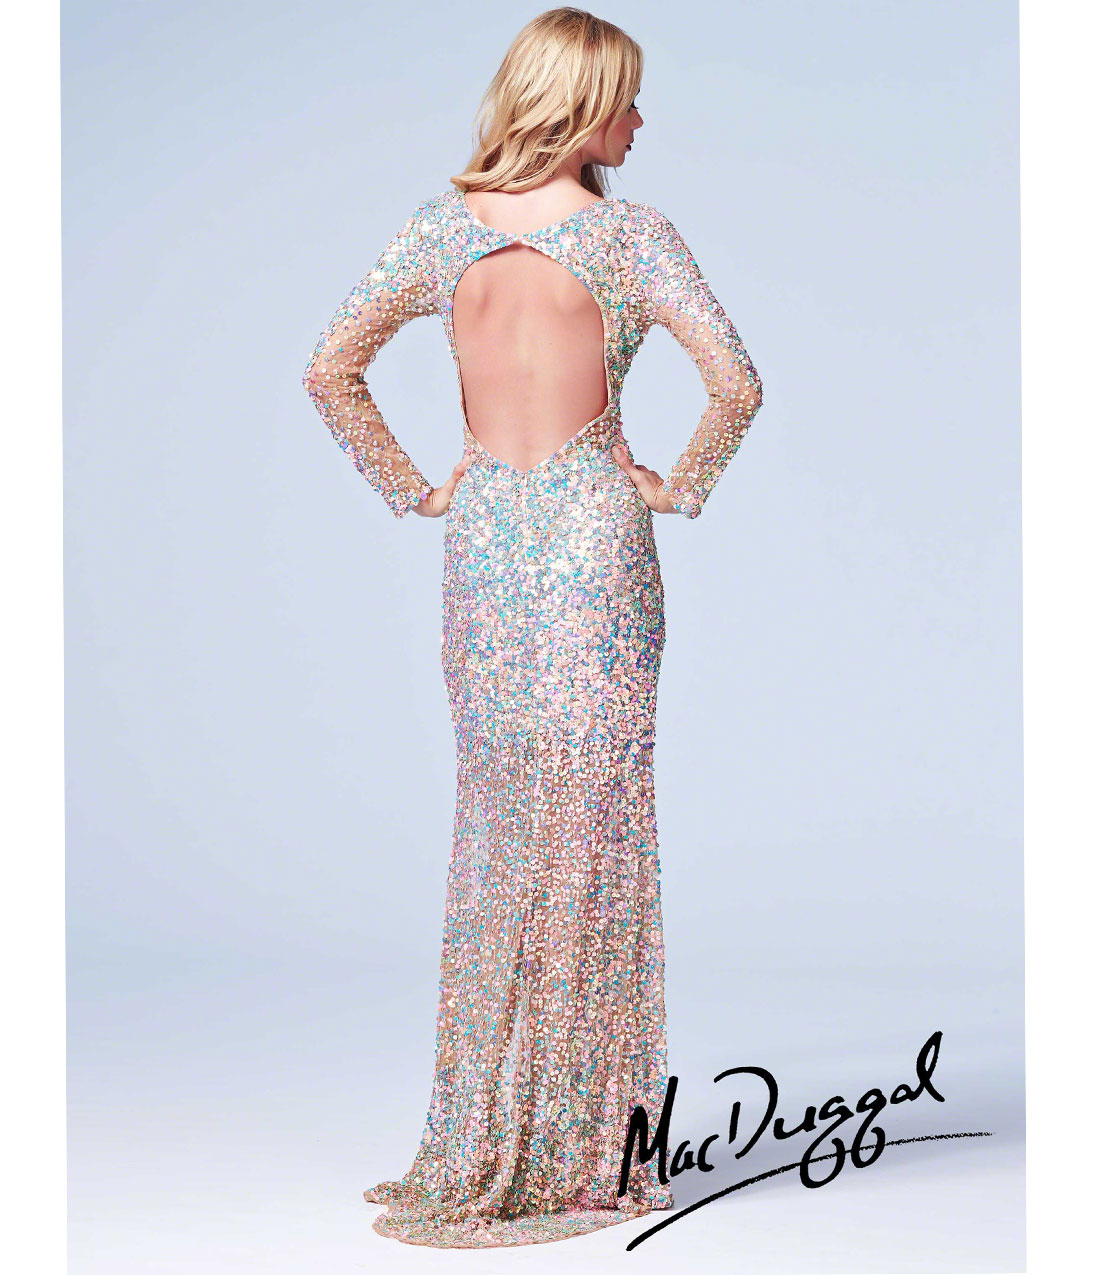 Mac Duggal 2014 Prom Dresses - Nude Metallic Sequin Beaded Long Sleeve Open Back Illusion Gown - Unique Vintage - Prom dresses, retro dresses, retro swimsuits.